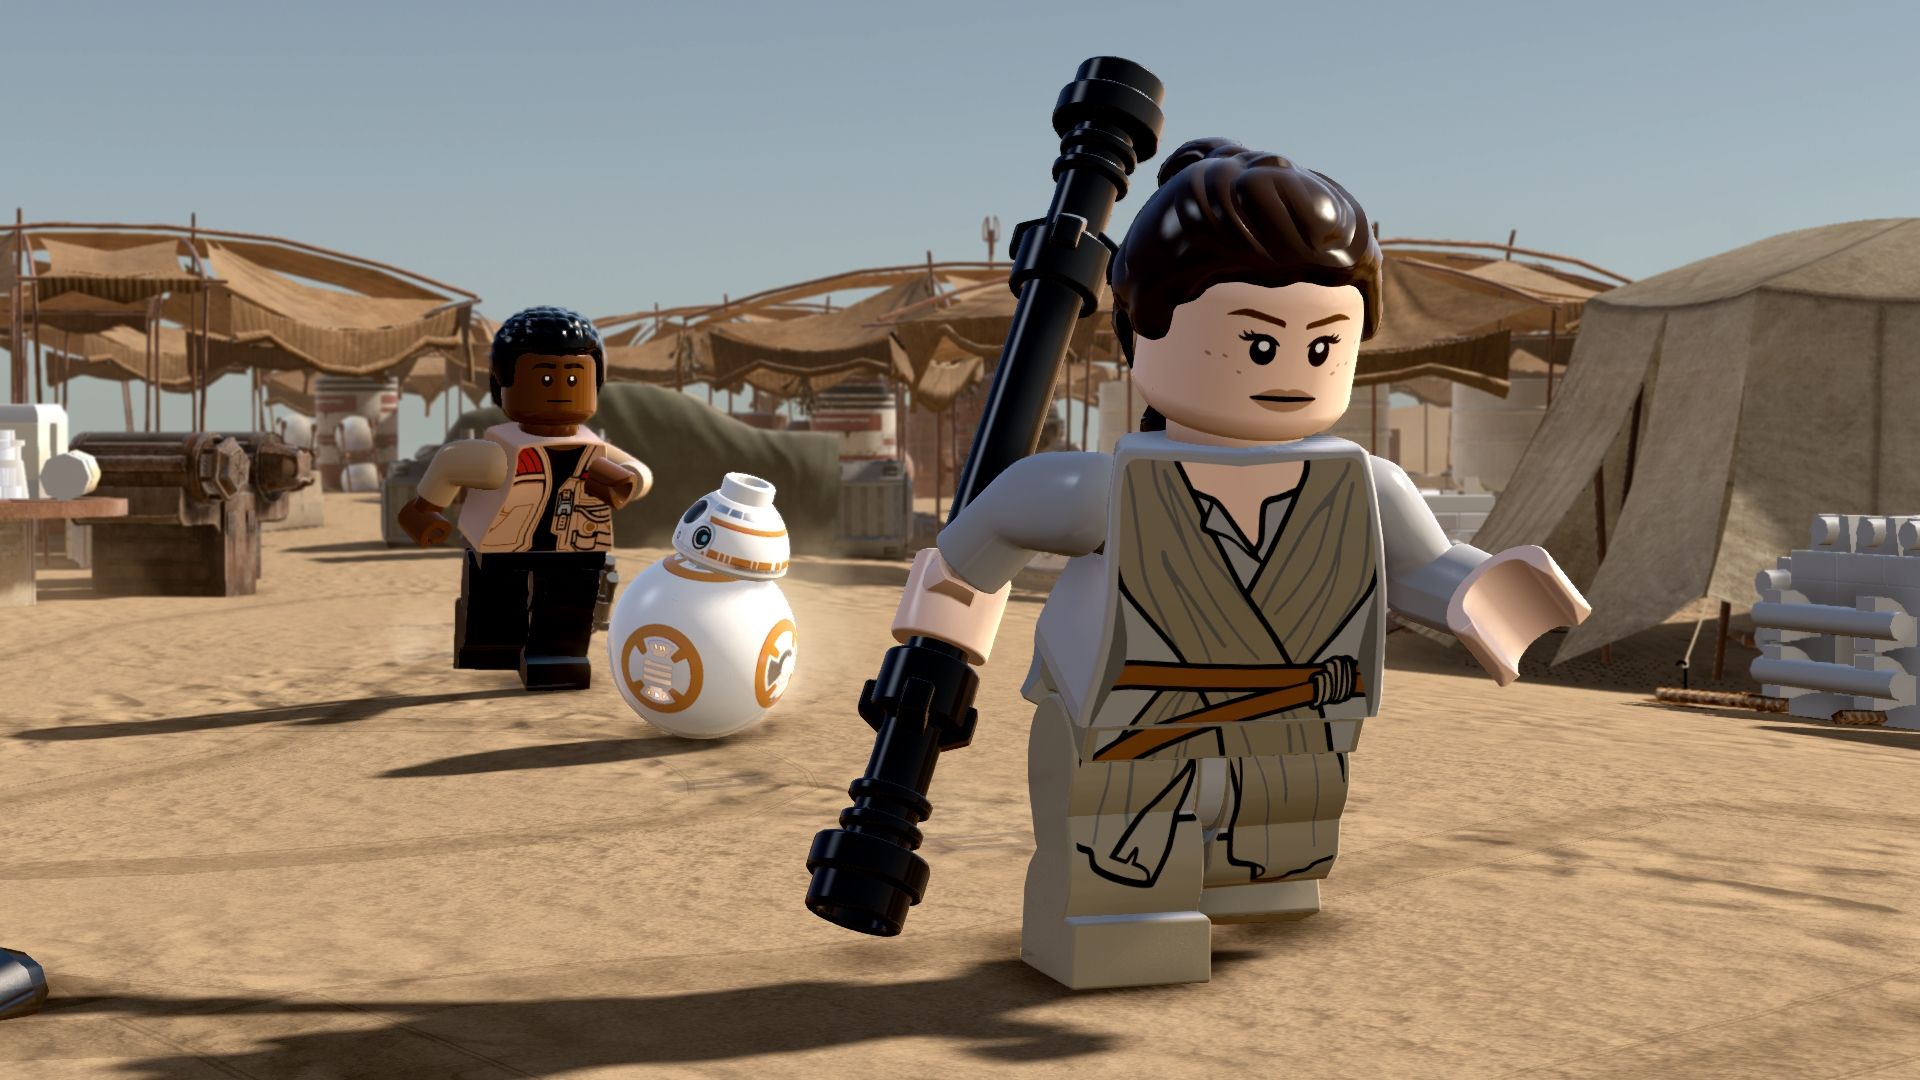 Lego Star Wars: The Force Awakens - other games must be bricking it